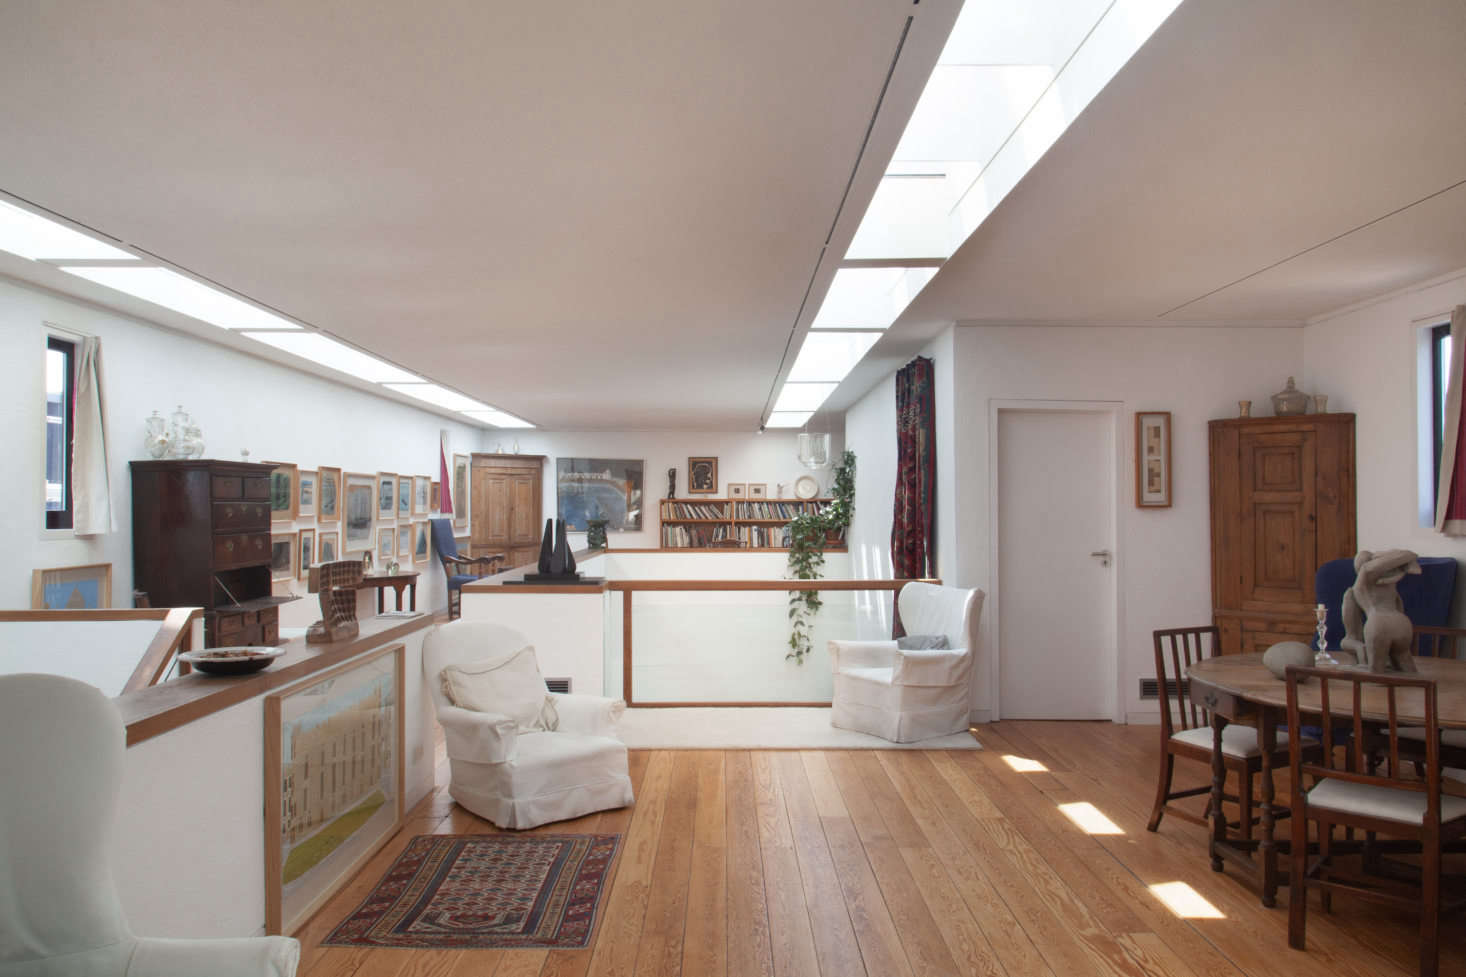 Three slipcovered armchairs are scattered down the length of the second floor modern extension. The furthest chair is tilted for viewing the low-hanging painting beneath the small window, and from the middle chair, the viewer can see Henri Gaudier-Brzeska&#8